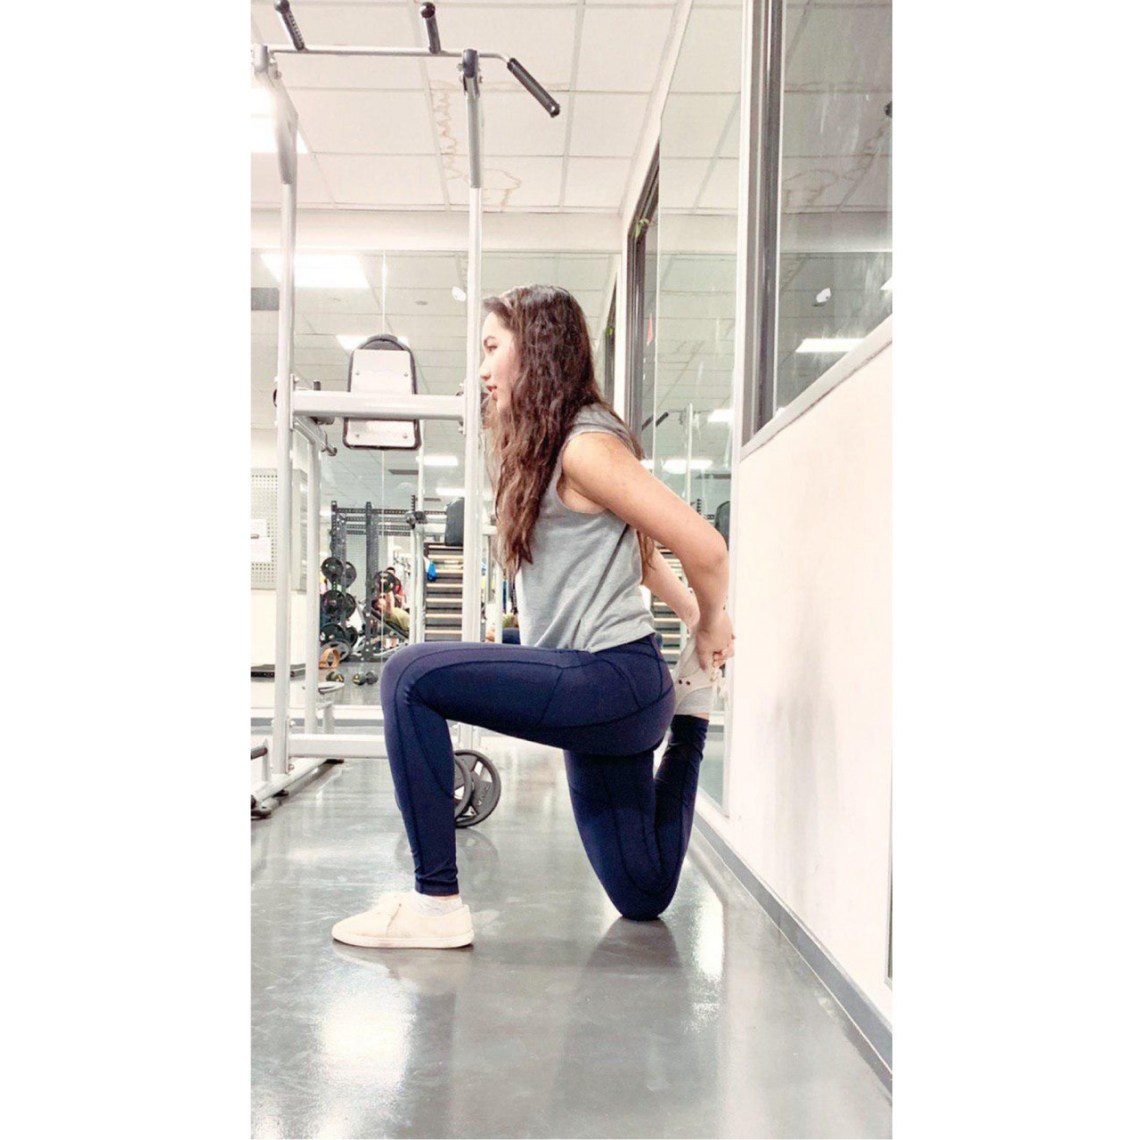 Stretching at the gym